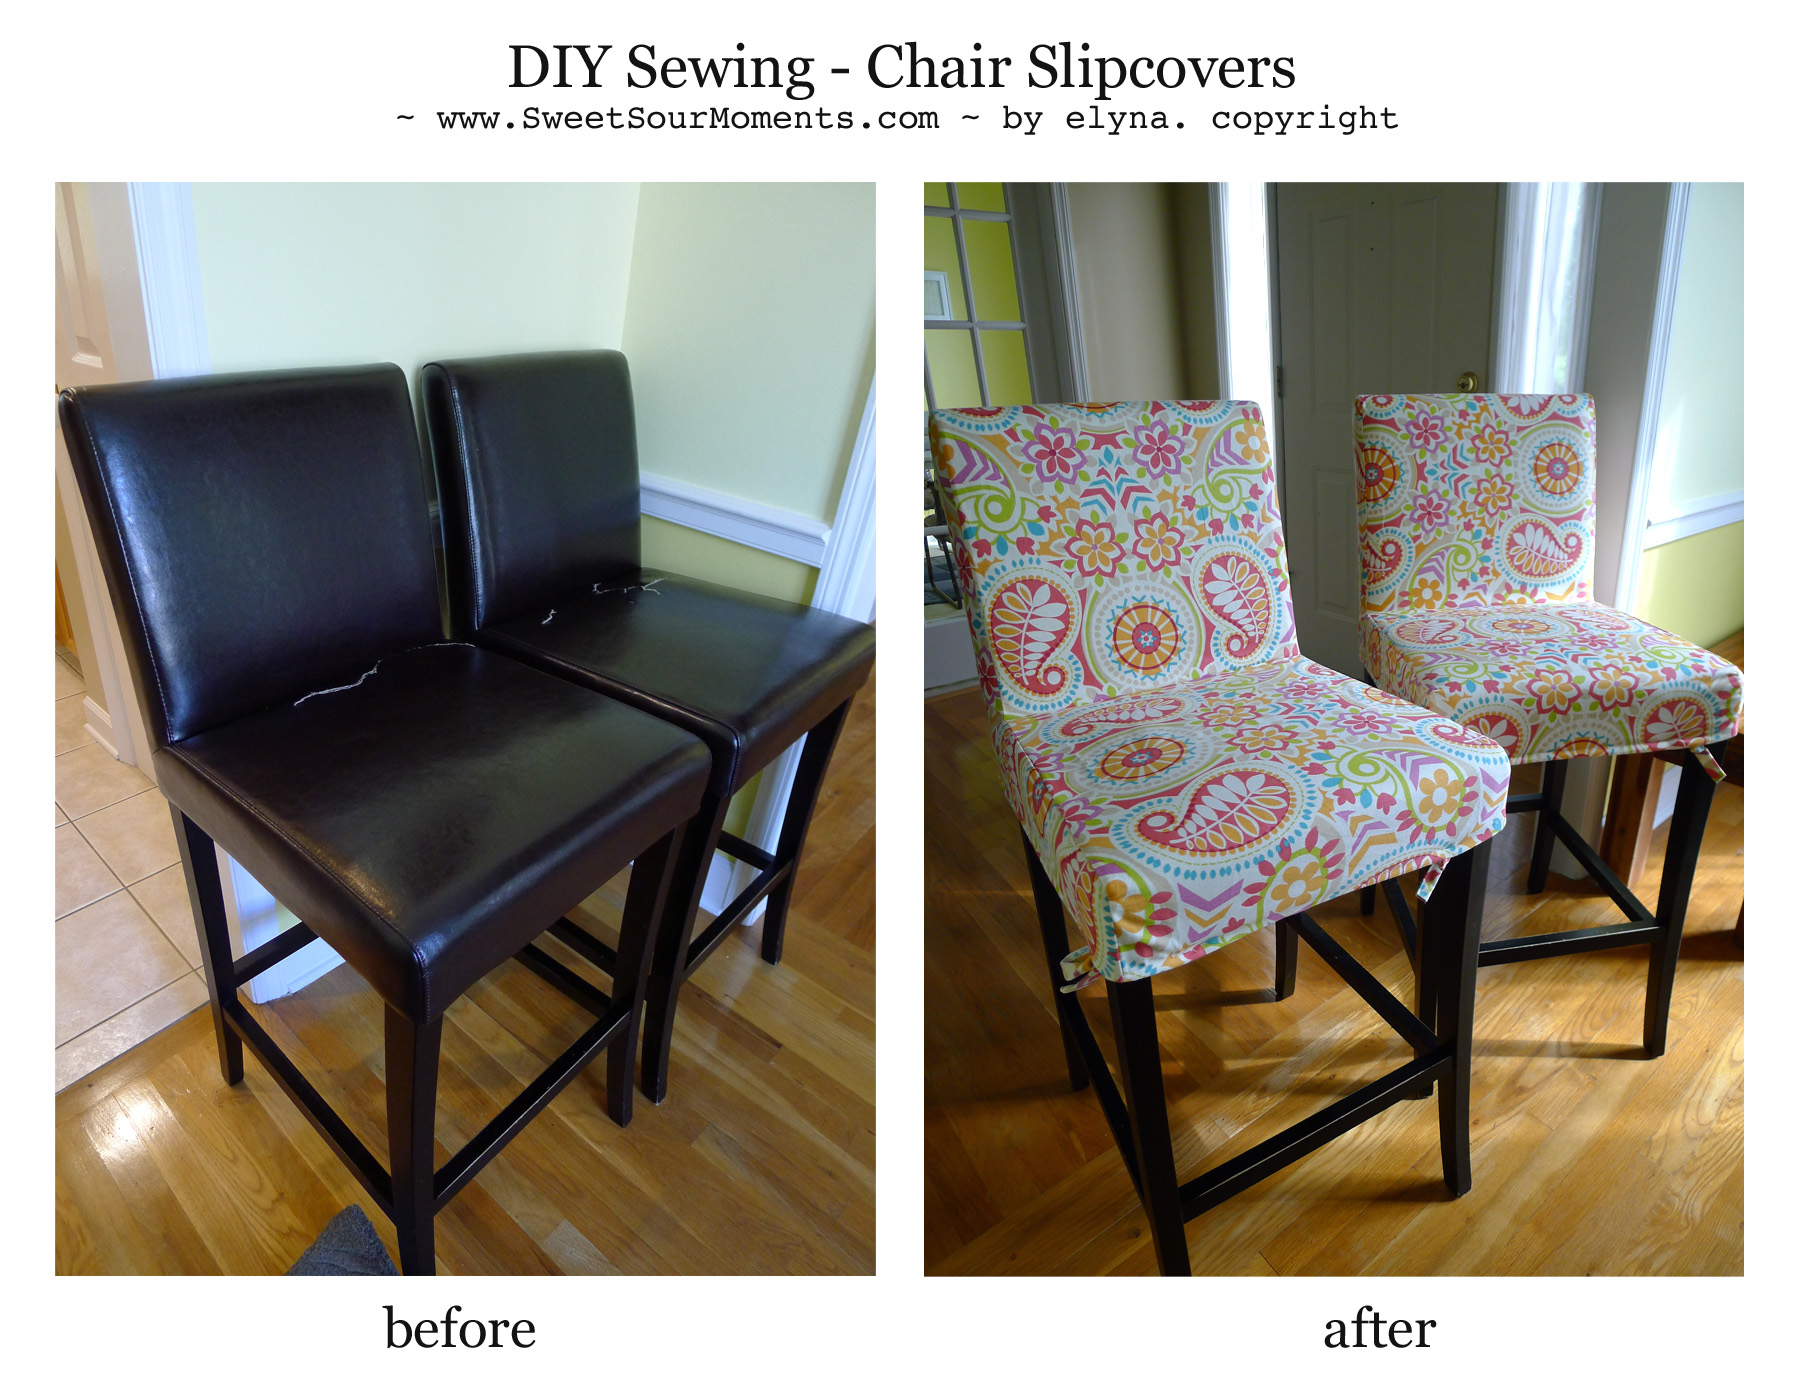 armchair cover diy wheelchair airport sewing chair slipcovers sweetsourmoments